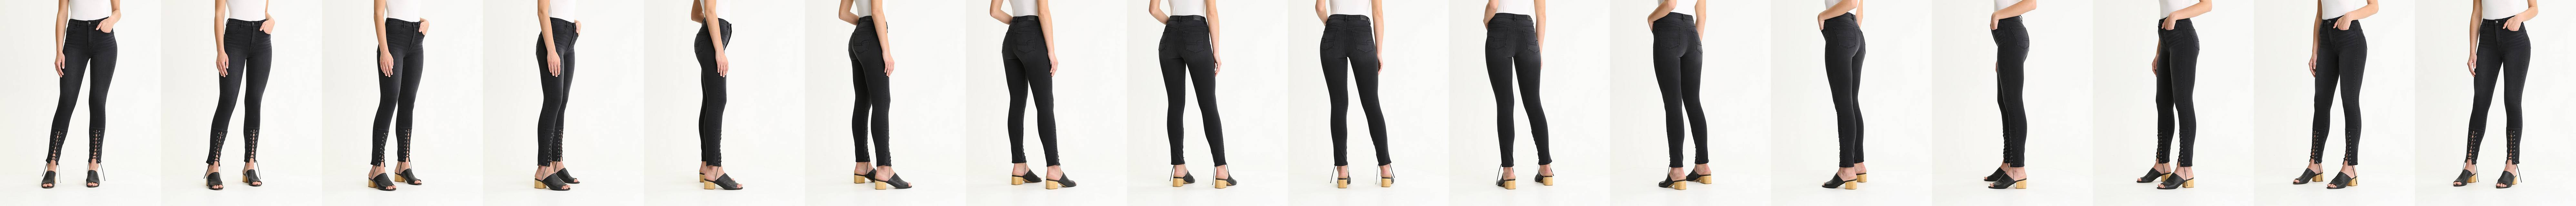 AE Denim X4 Highest Waist Jegging